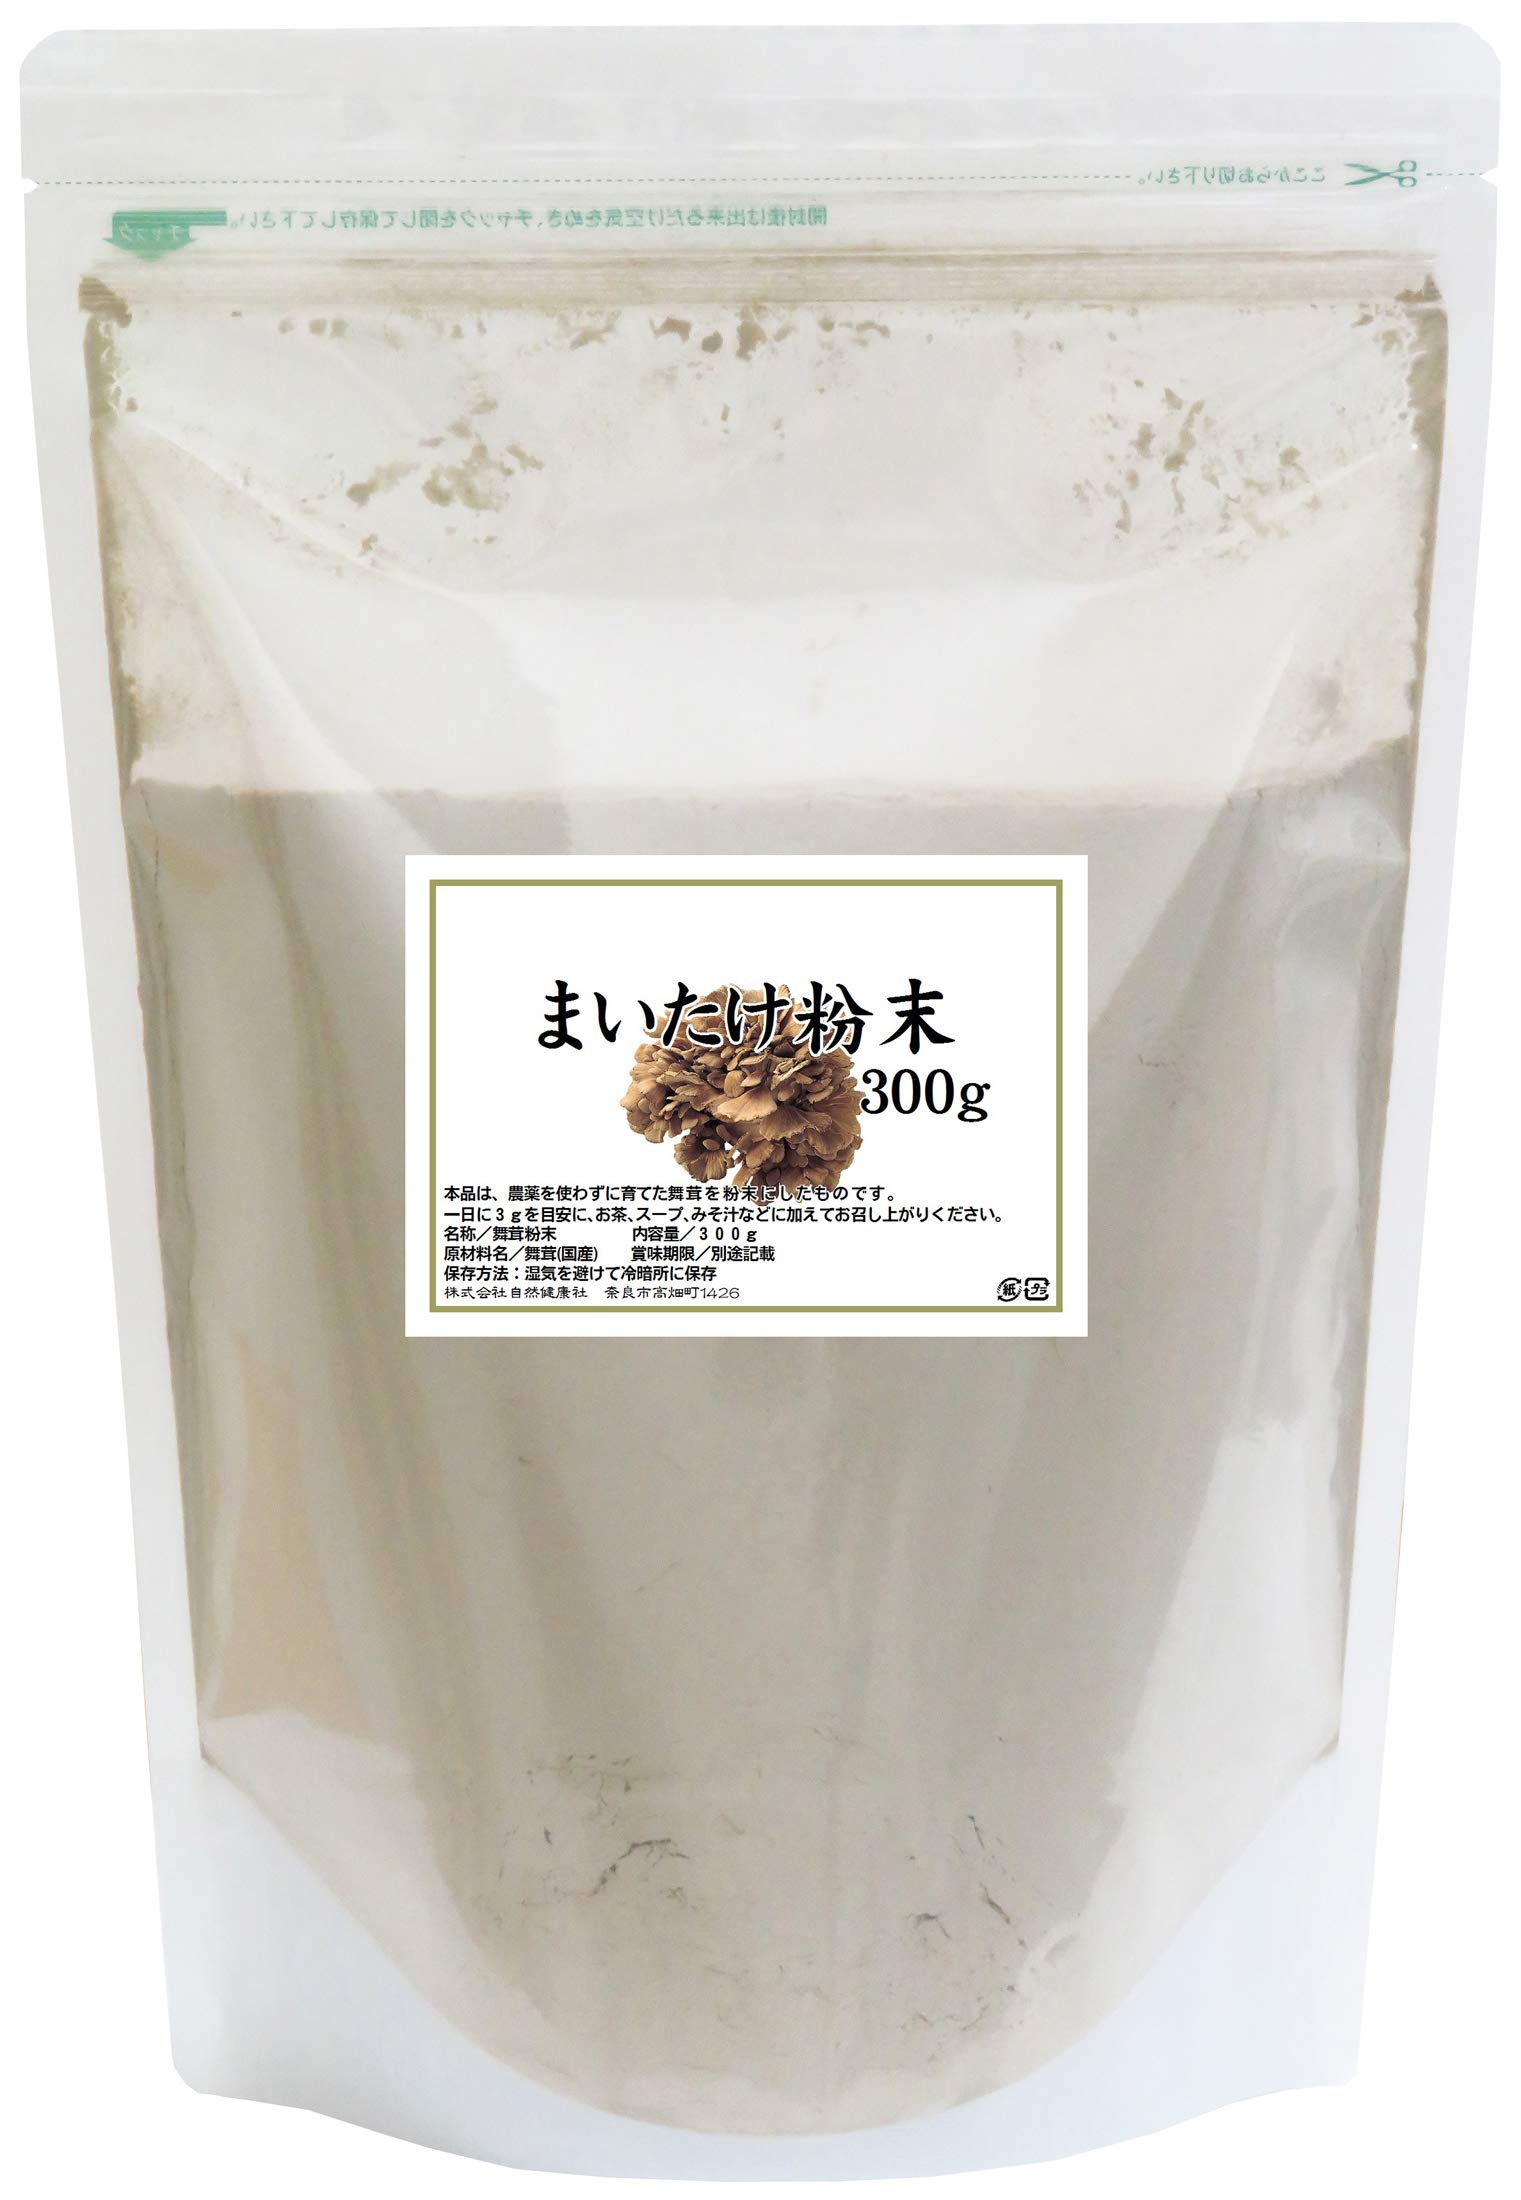 Natural health company domestically Maitake Powder 300g Bag with Chuck [Japan Import]